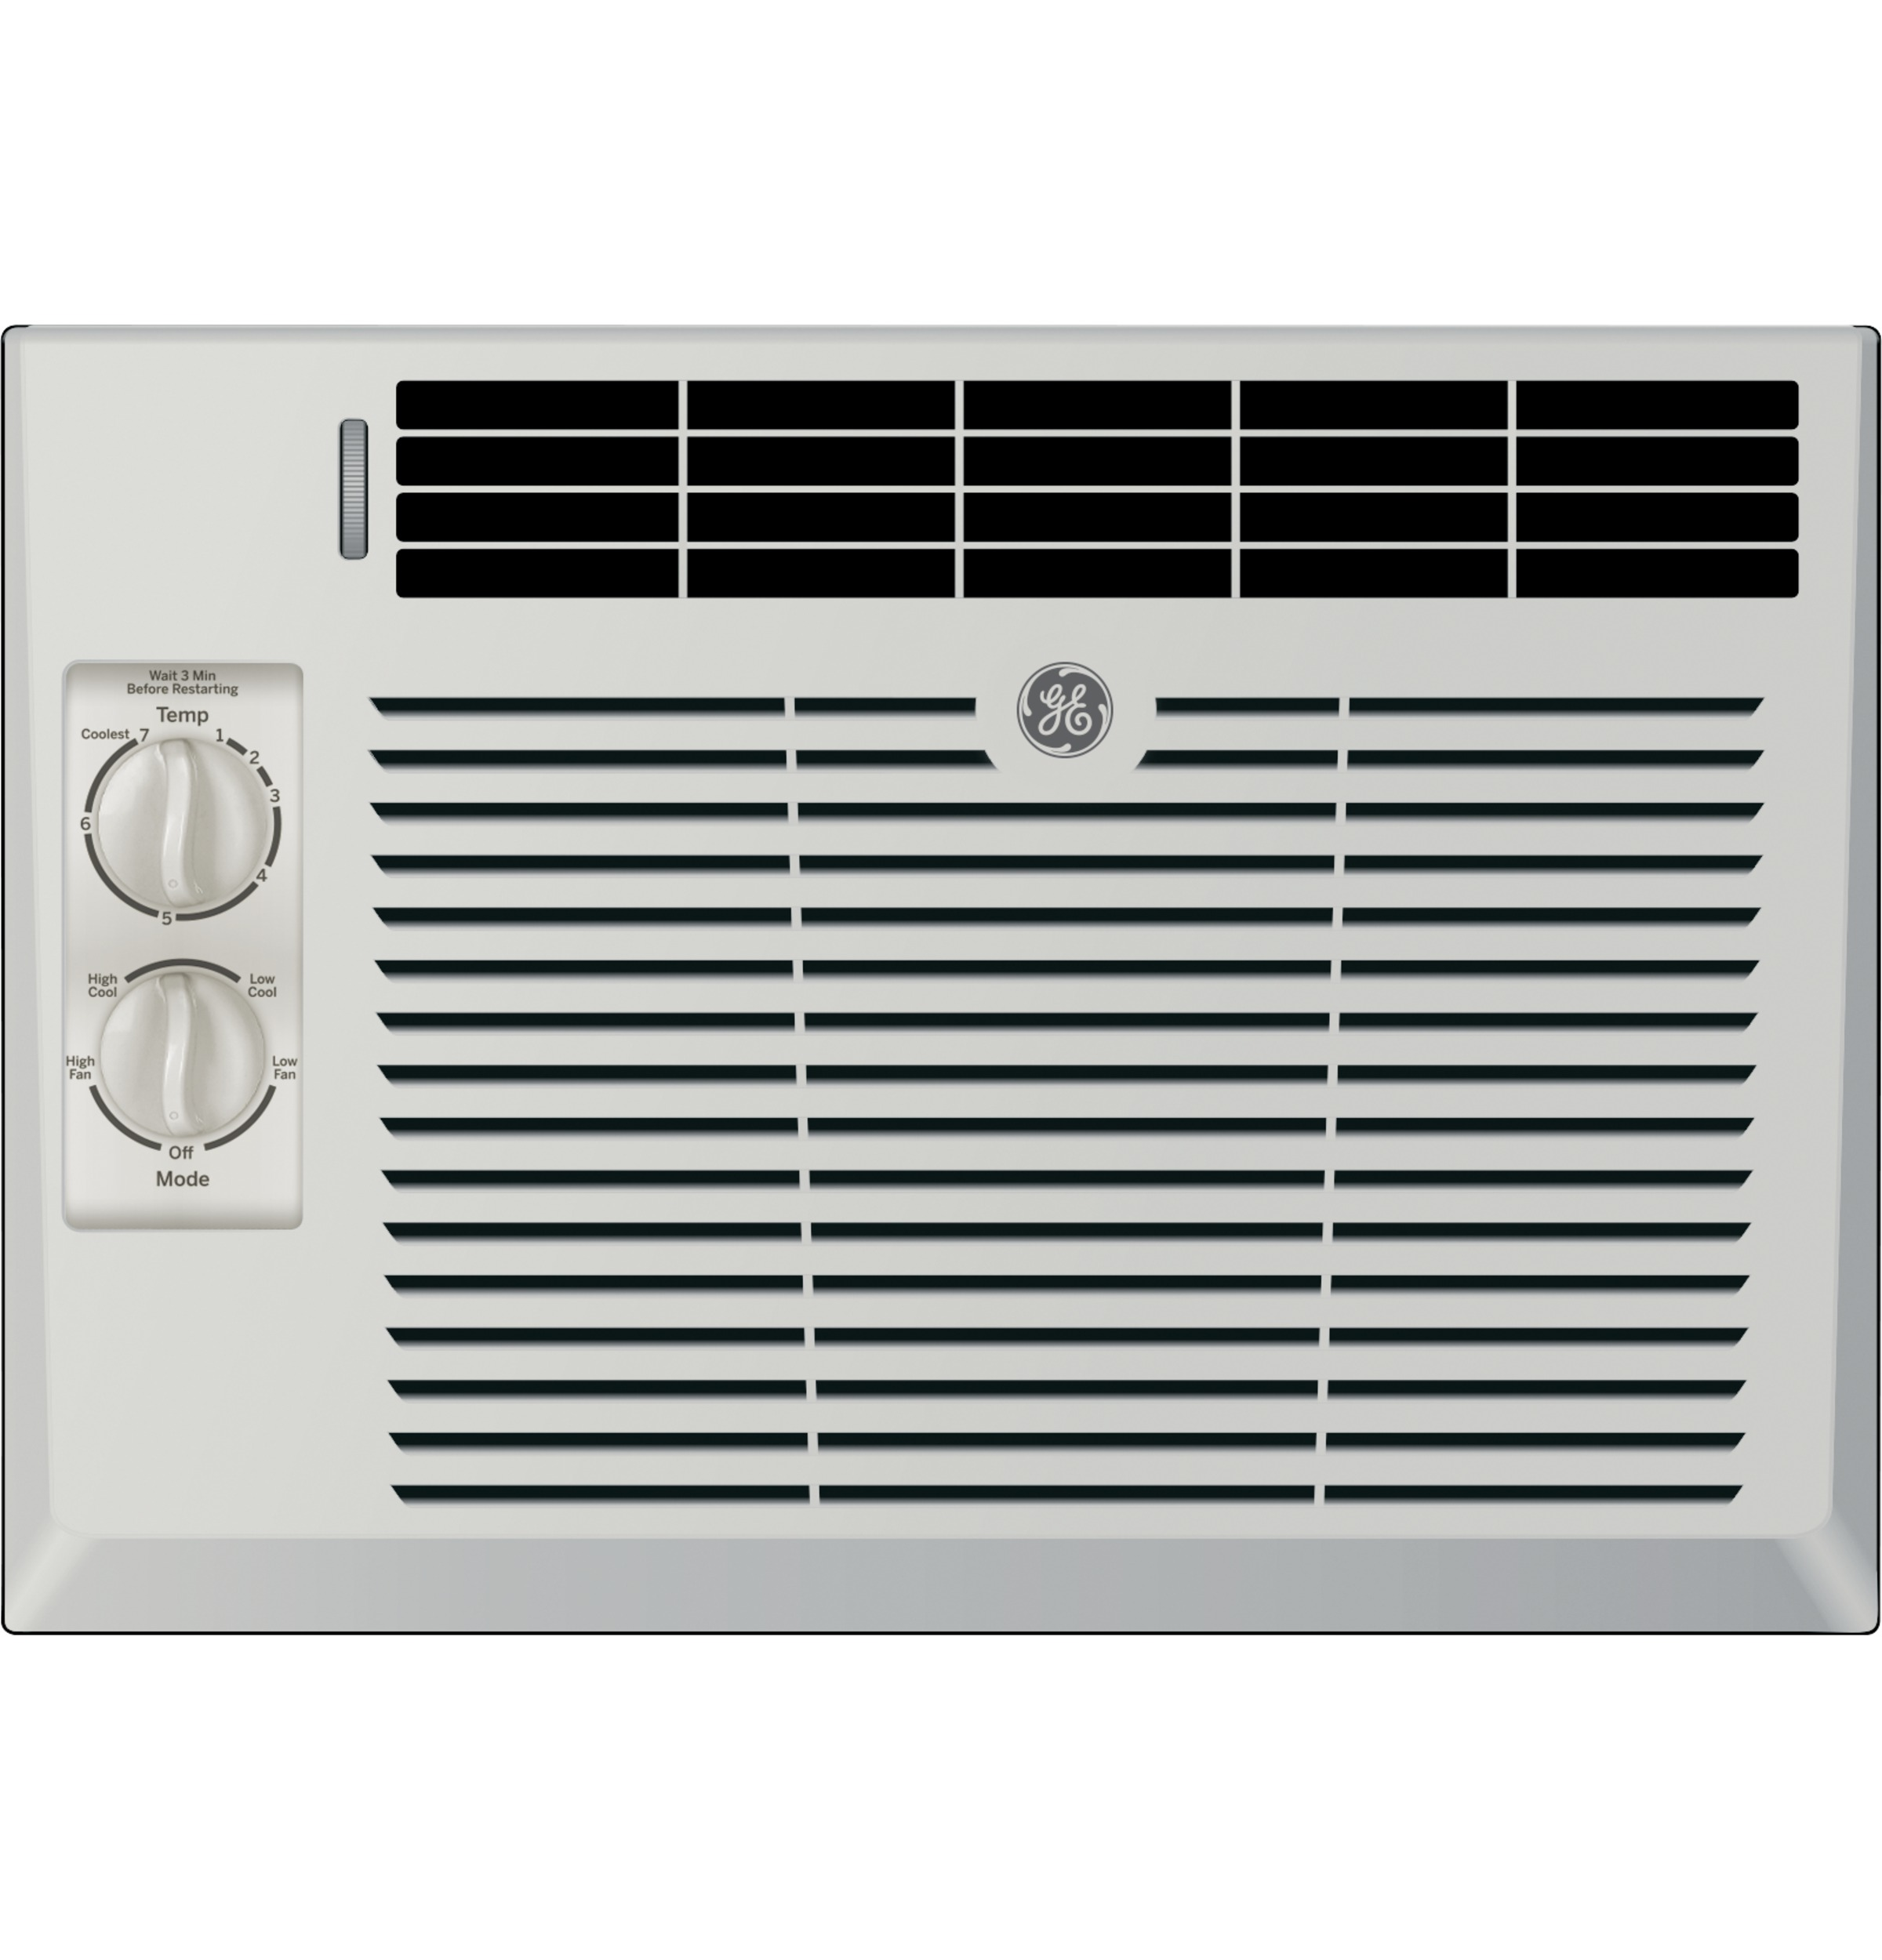 #0D1313 GE® 115 Volt Room Air Conditioner AEV05LV GE Appliances Brand New 12051 Ge Window Air Conditioners images with 2400x2500 px on helpvideos.info - Air Conditioners, Air Coolers and more